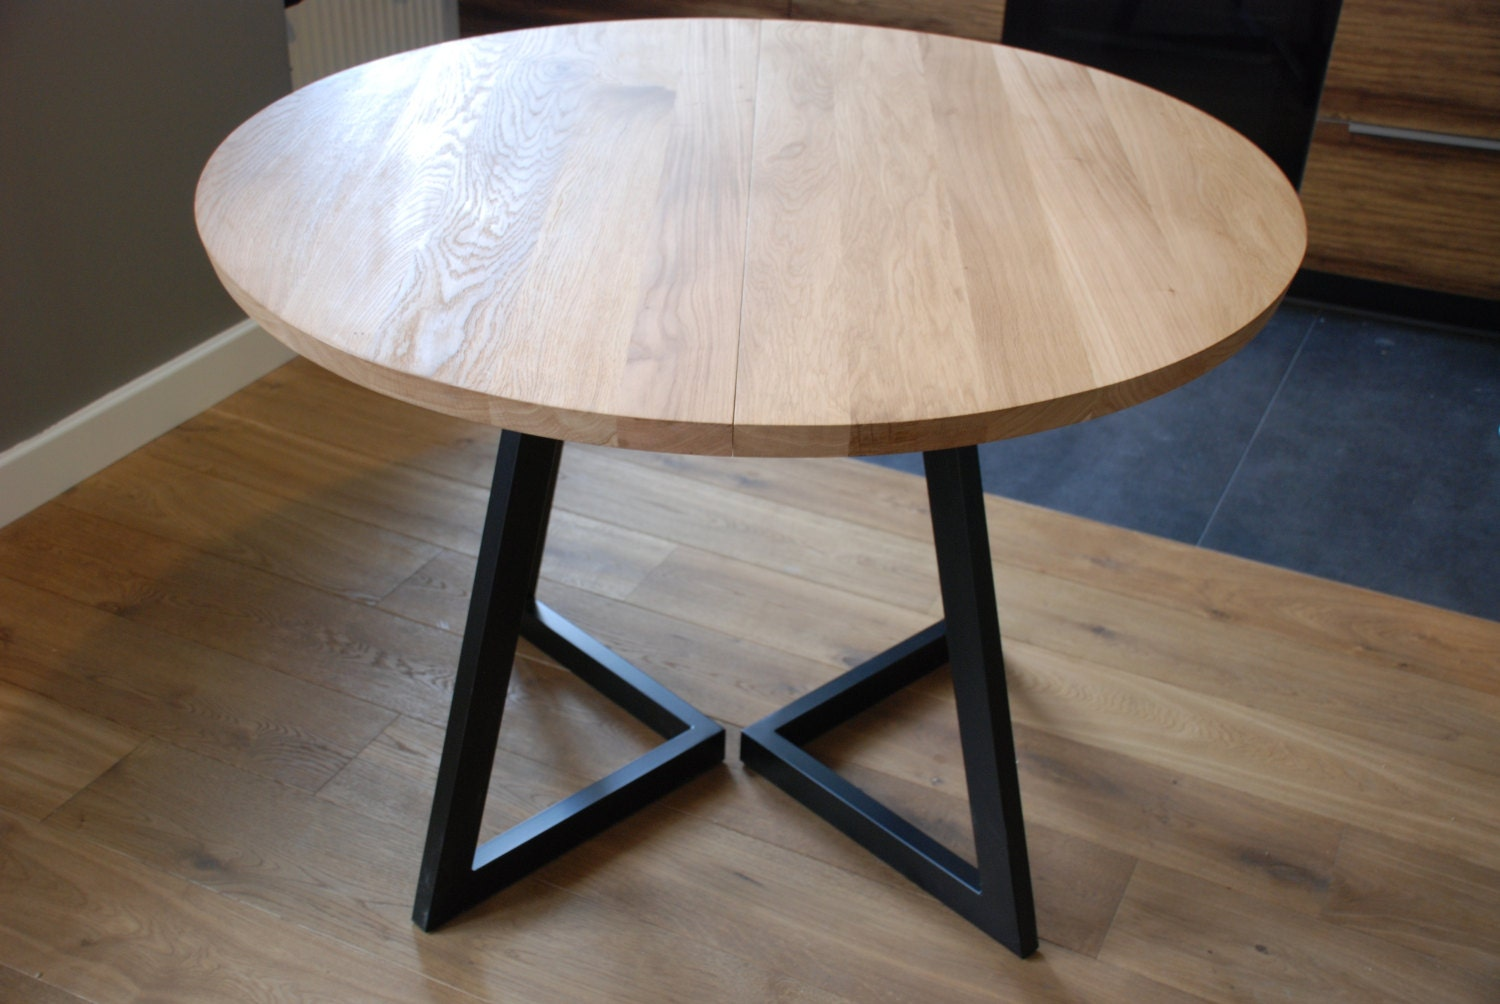 Bois et table ronde rallonges design moderne en acier for Table ronde extensible design